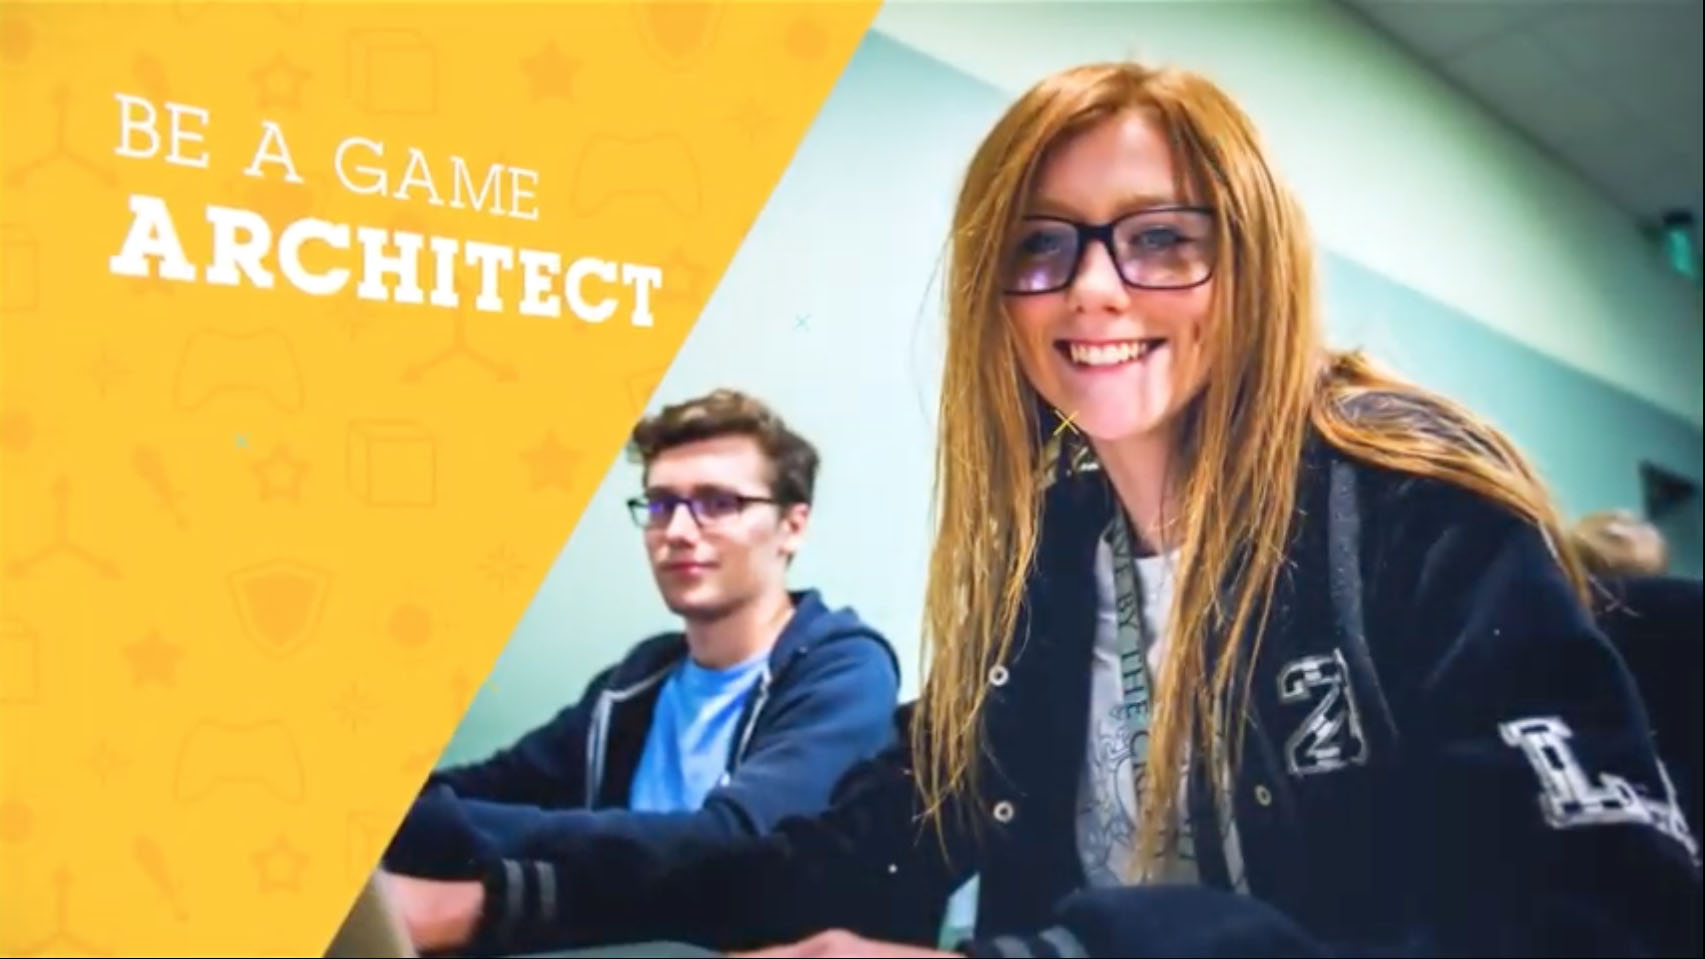 Teenagers learning game design in a summer camp